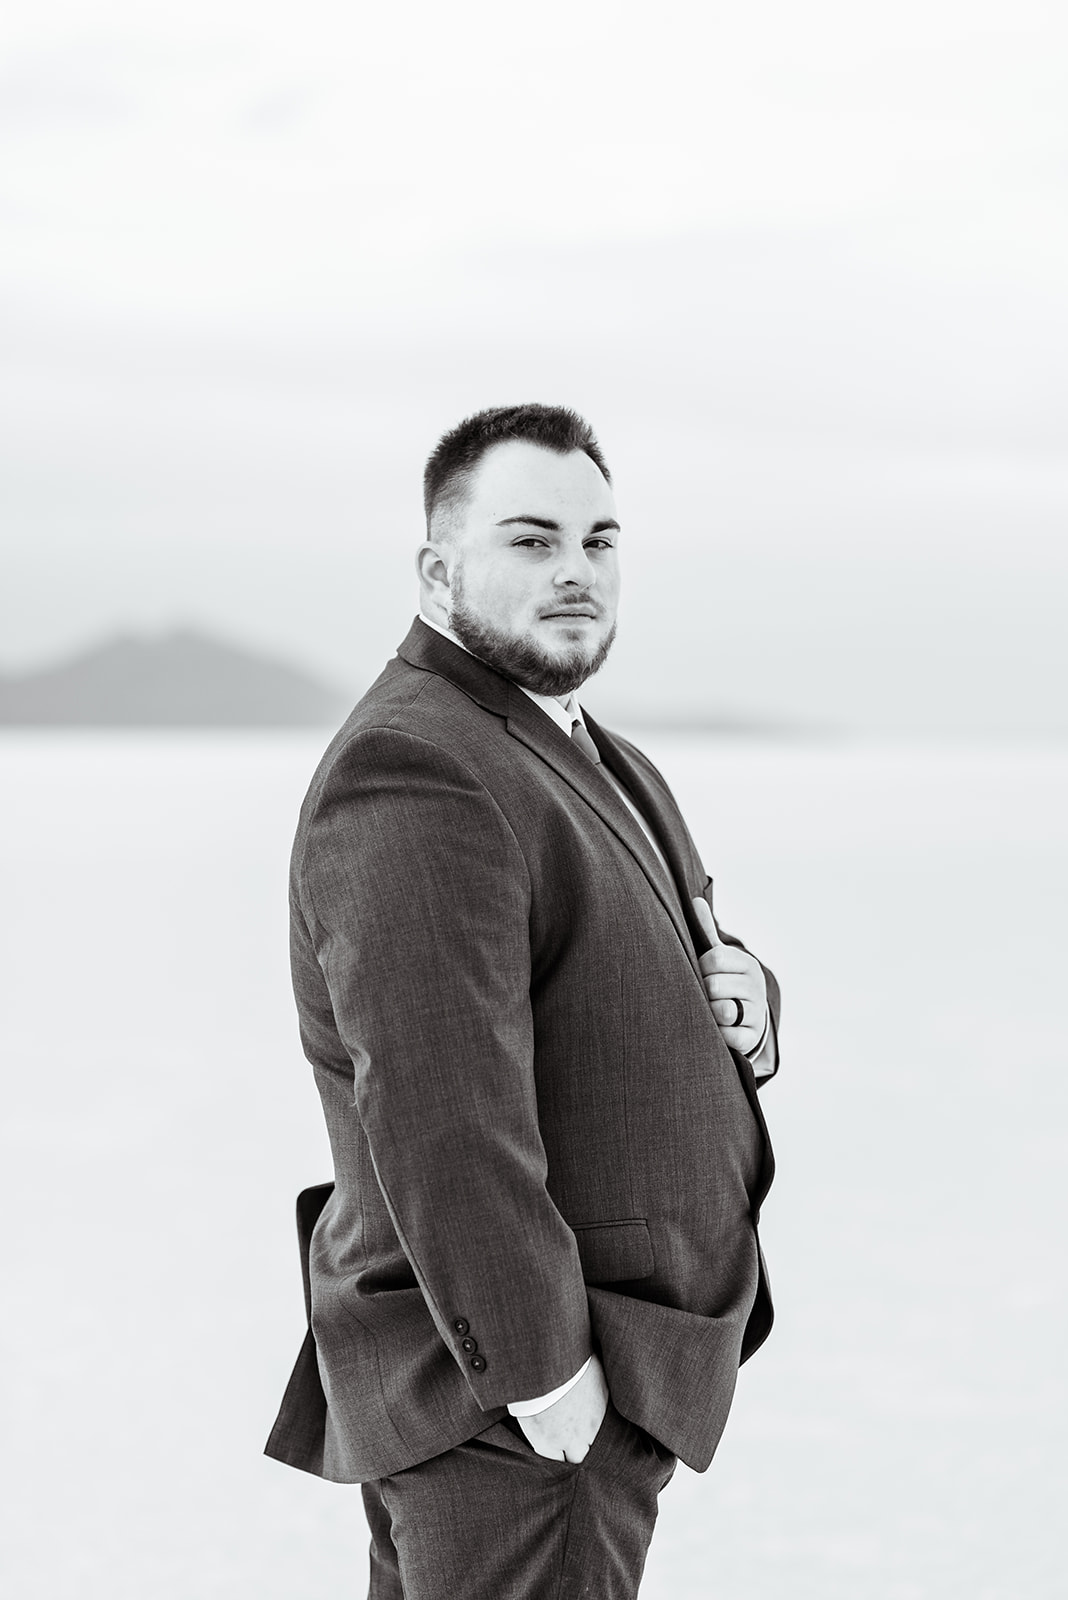 Classic black and white groom portrait of Zach at the Bonneville Salt Falts in Utah. Grey suit and blue tie combo. Taken by Coley Cook Photography.